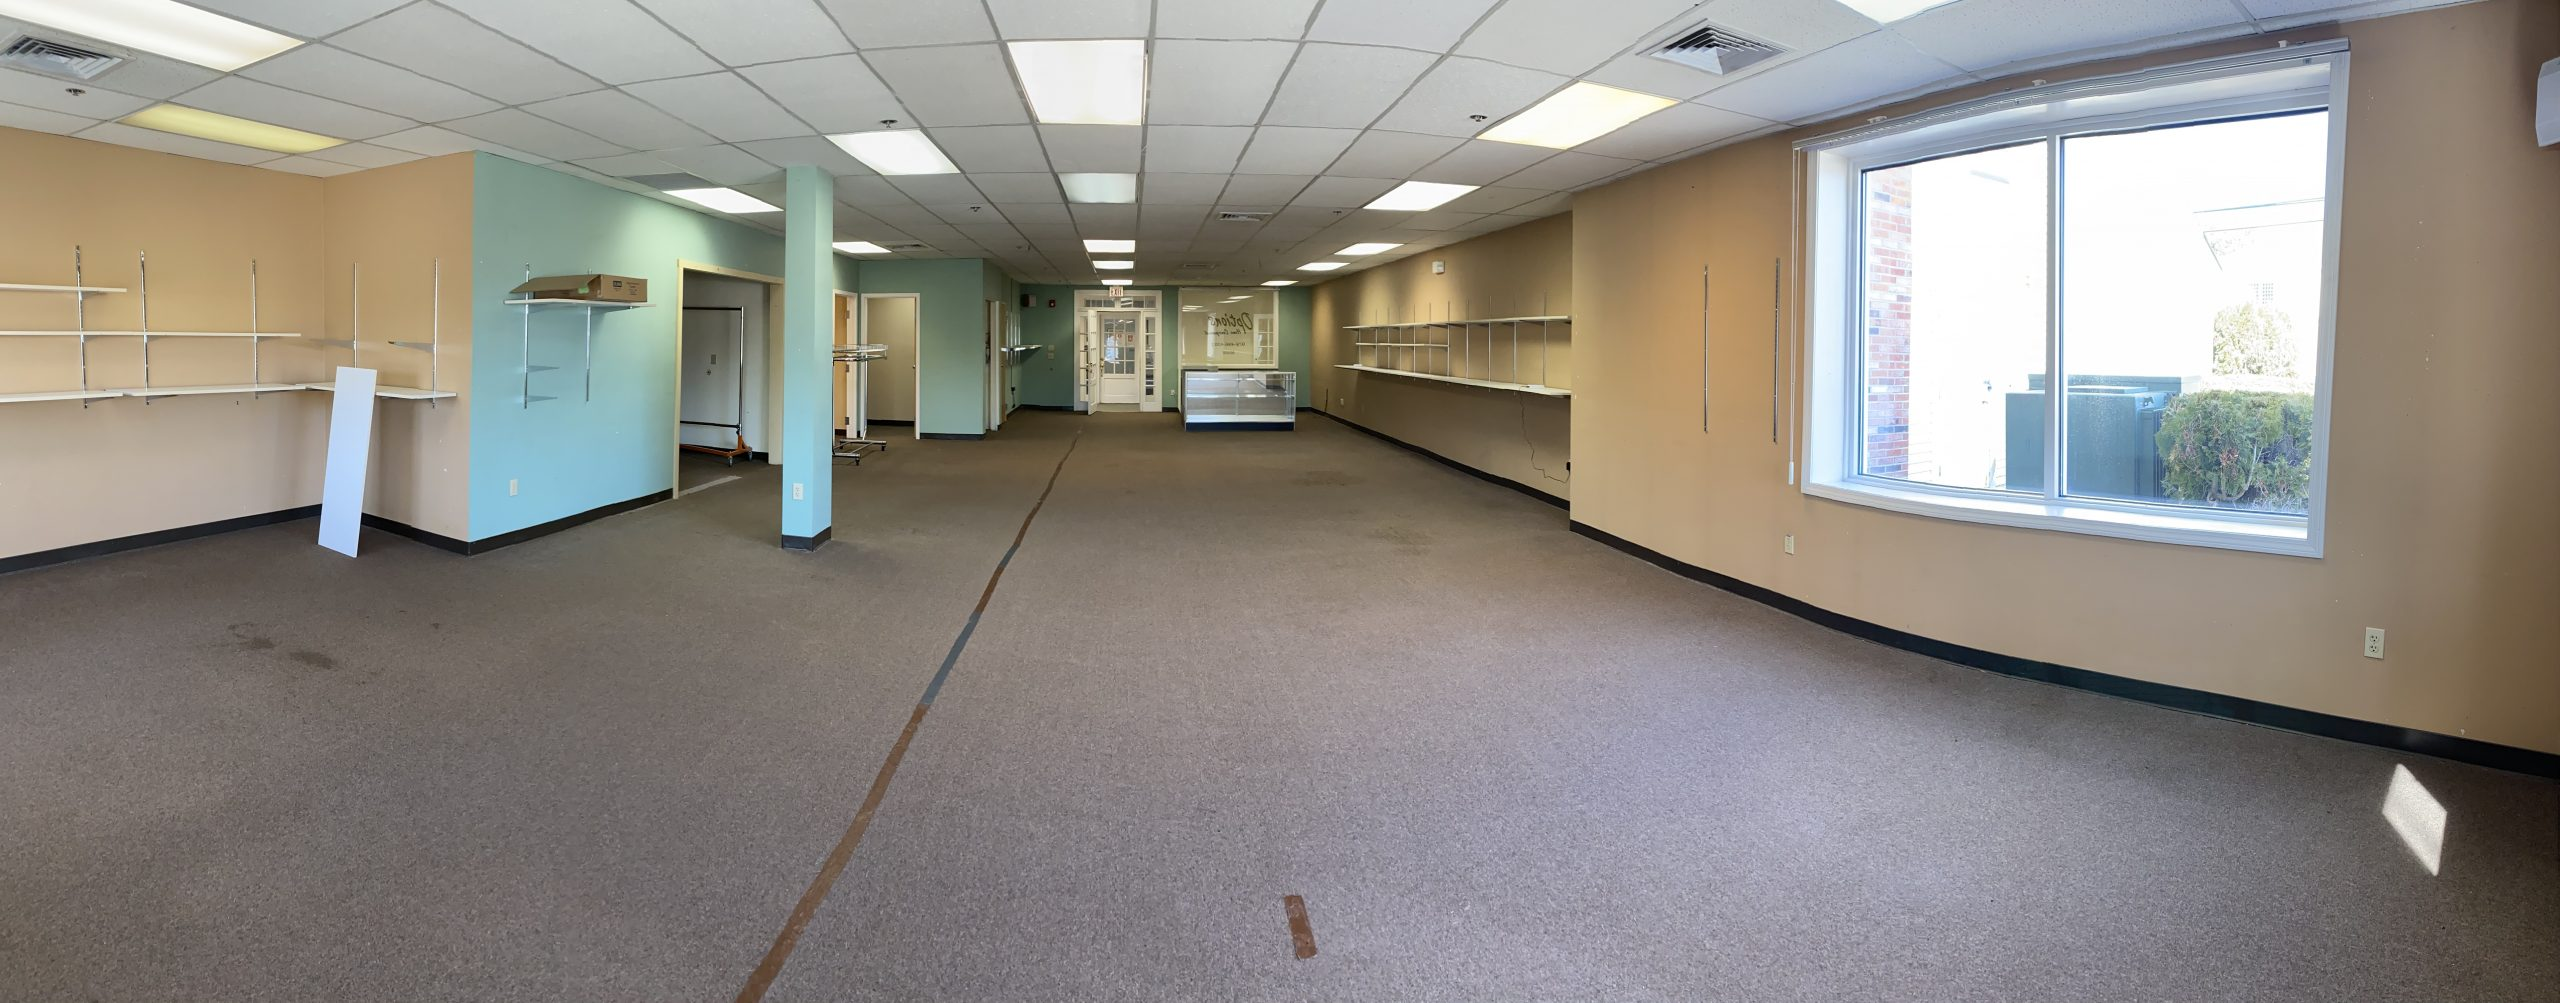 256 Great Rd, Suite 3, Littleton, MA